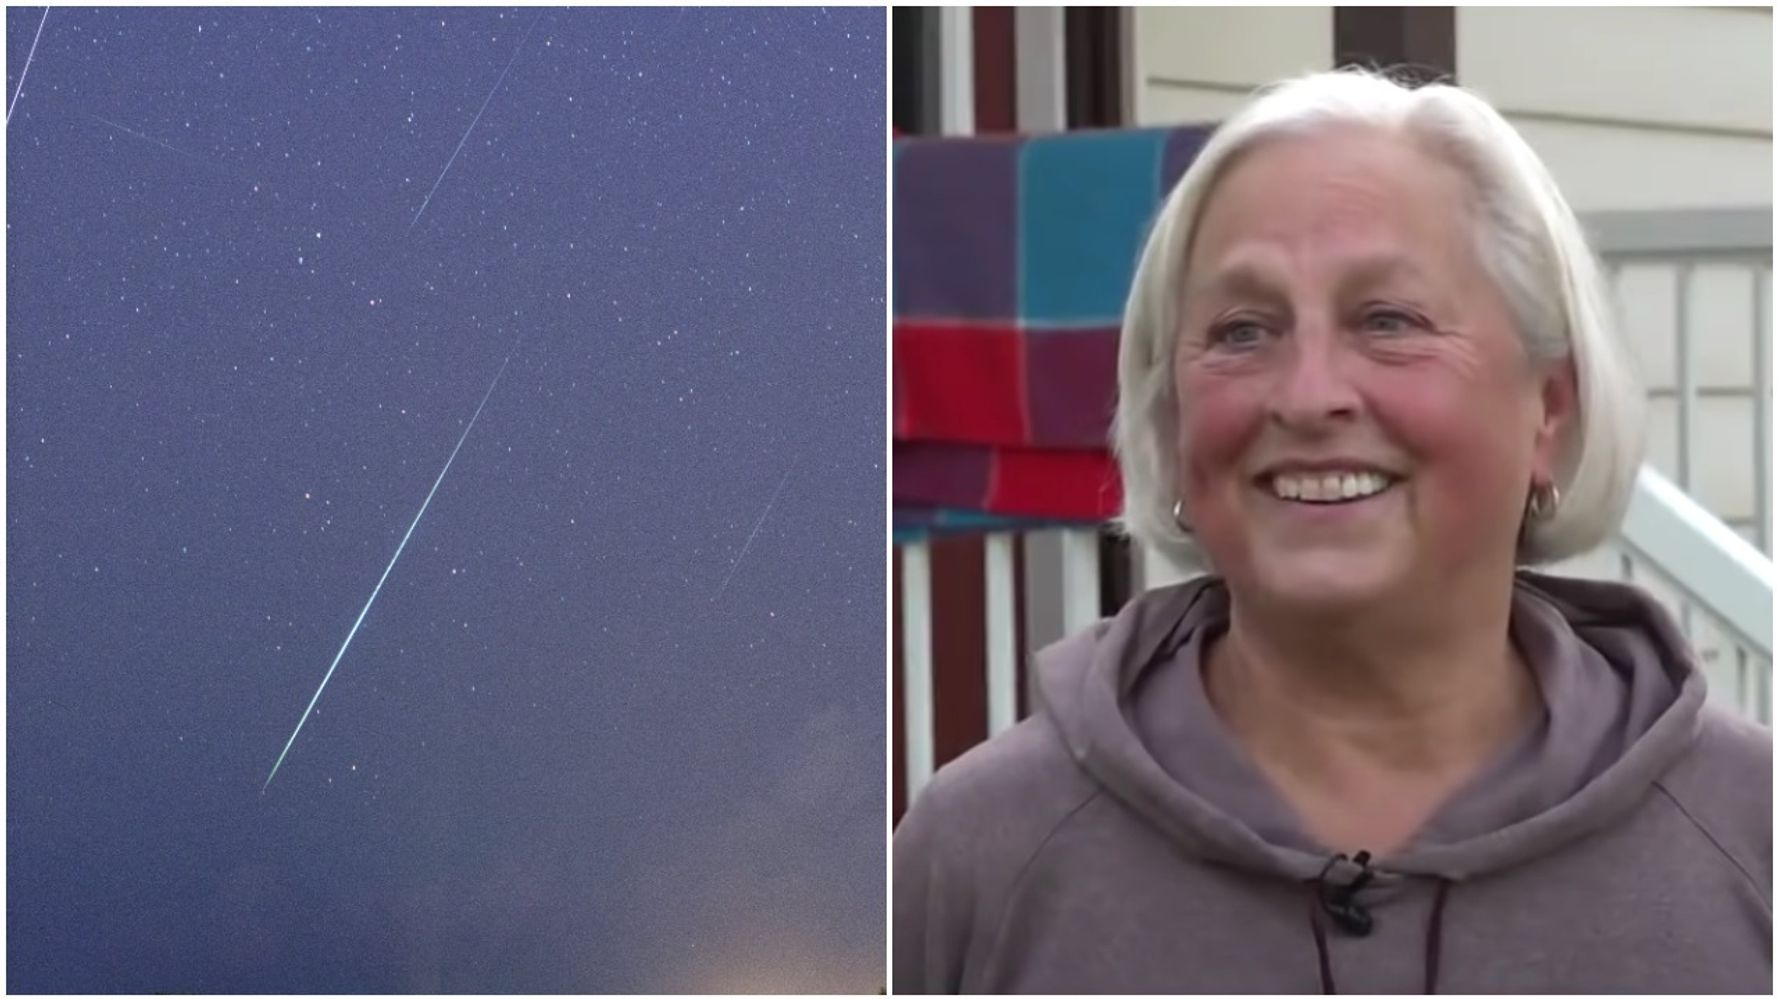 Meteorite Crashes Through Home, Lands In Sleeping Woman's Bed